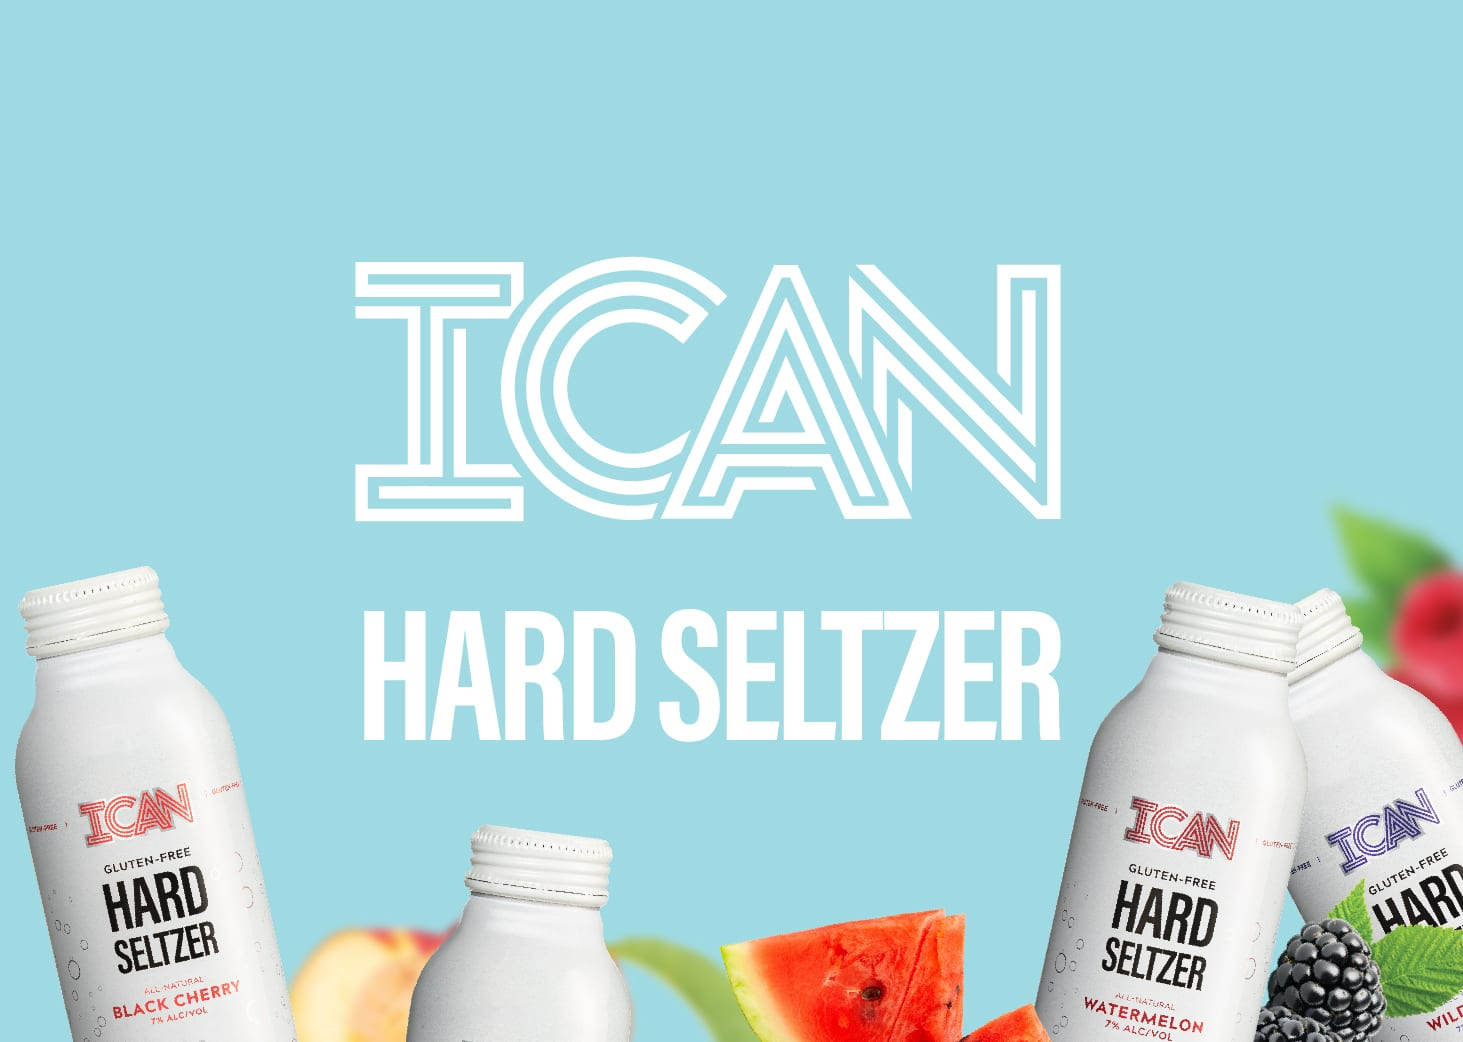 ICAN feature photo